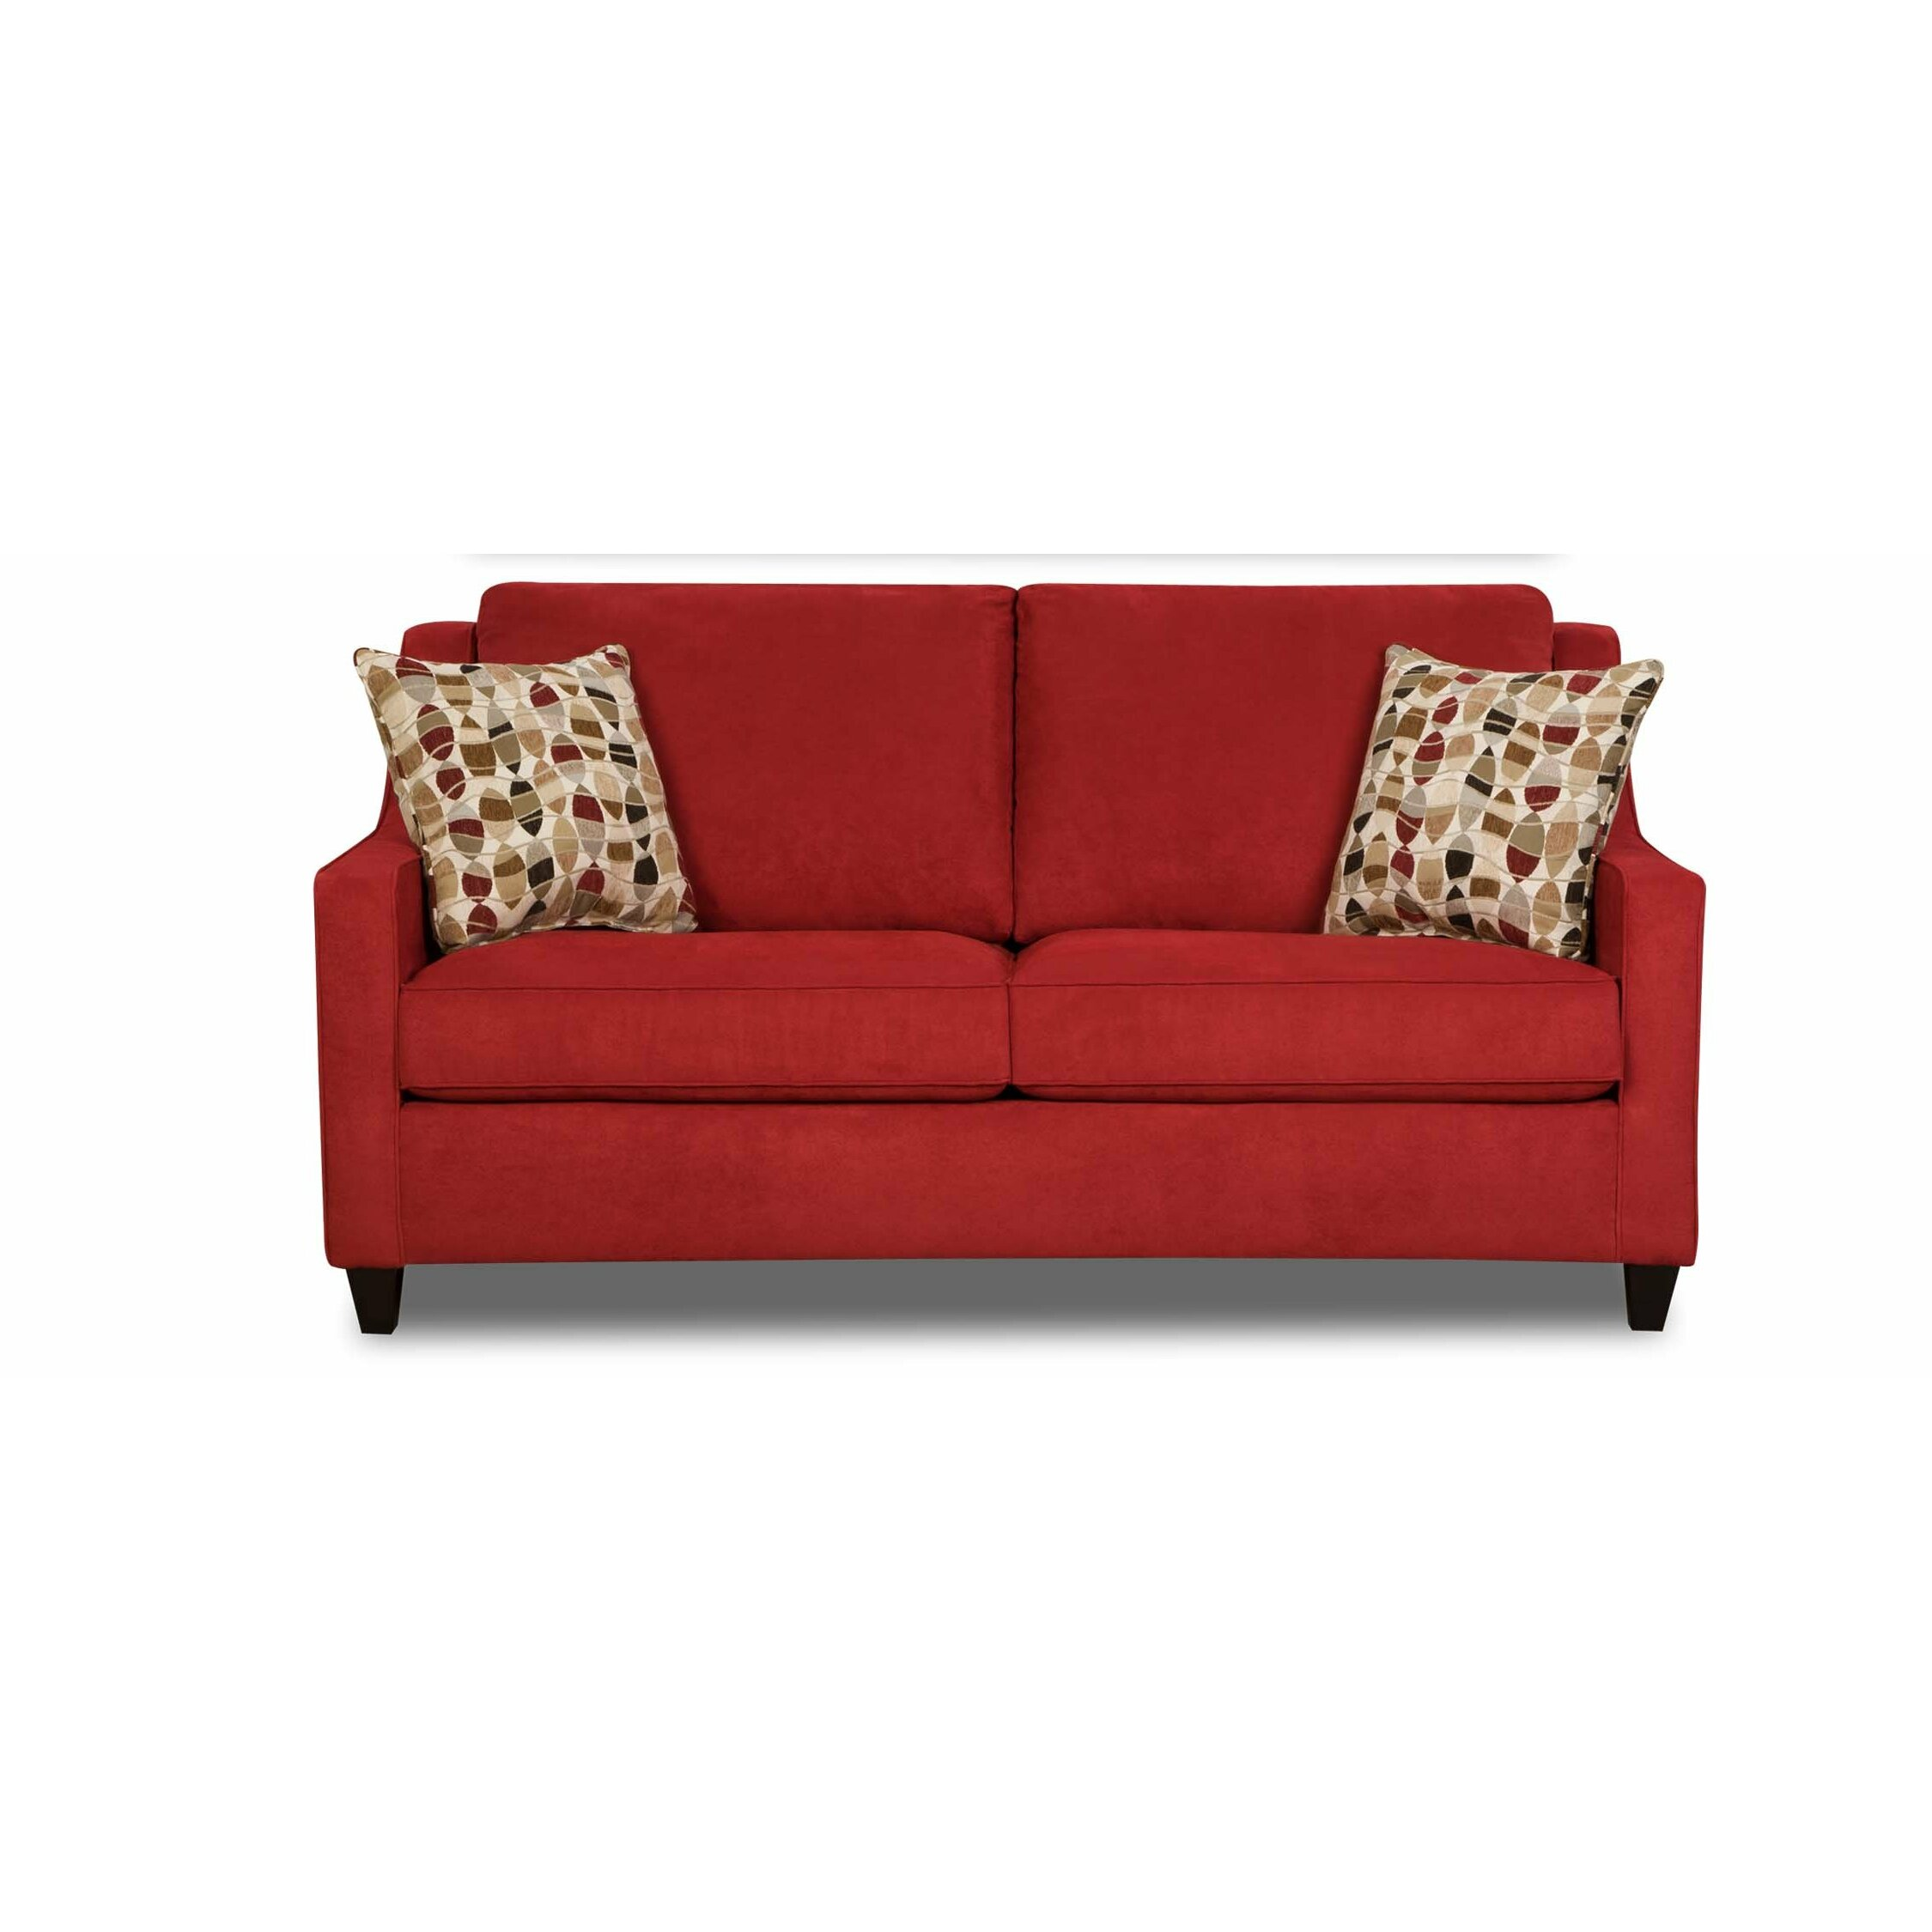 Simmons Upholstery Twillo Full Sleeper Sofa Reviews Wayfair